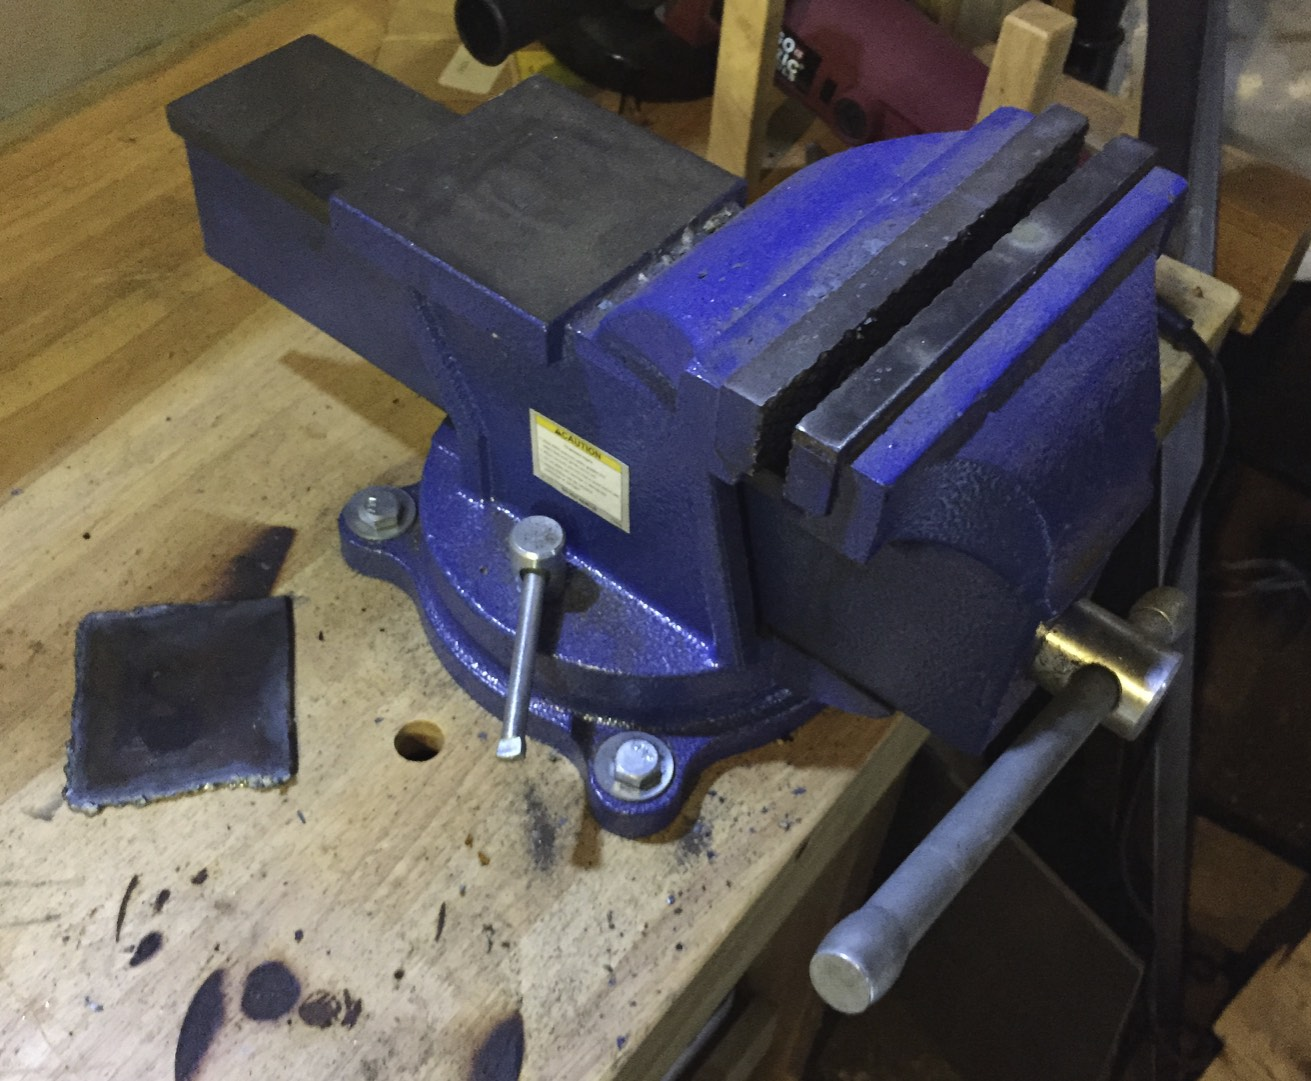 A bolted-down bench vice.